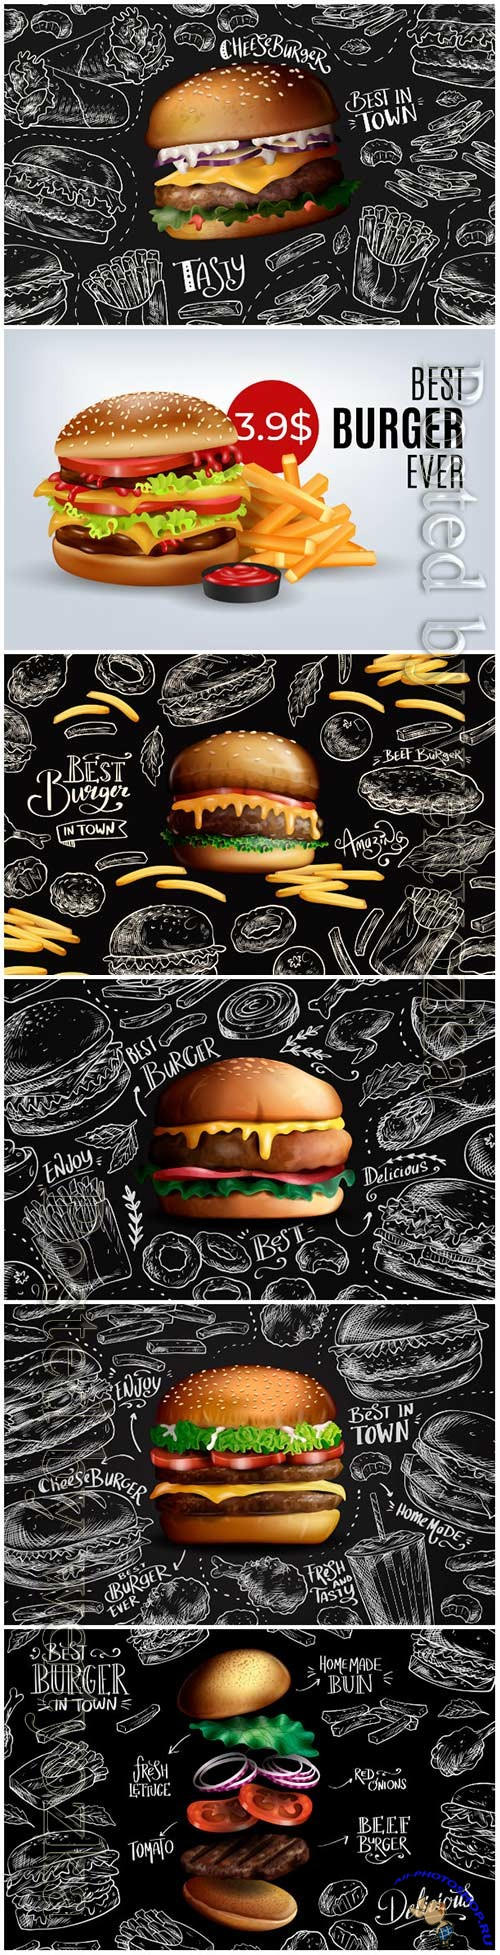 Falling realistic burger on chalkboard background